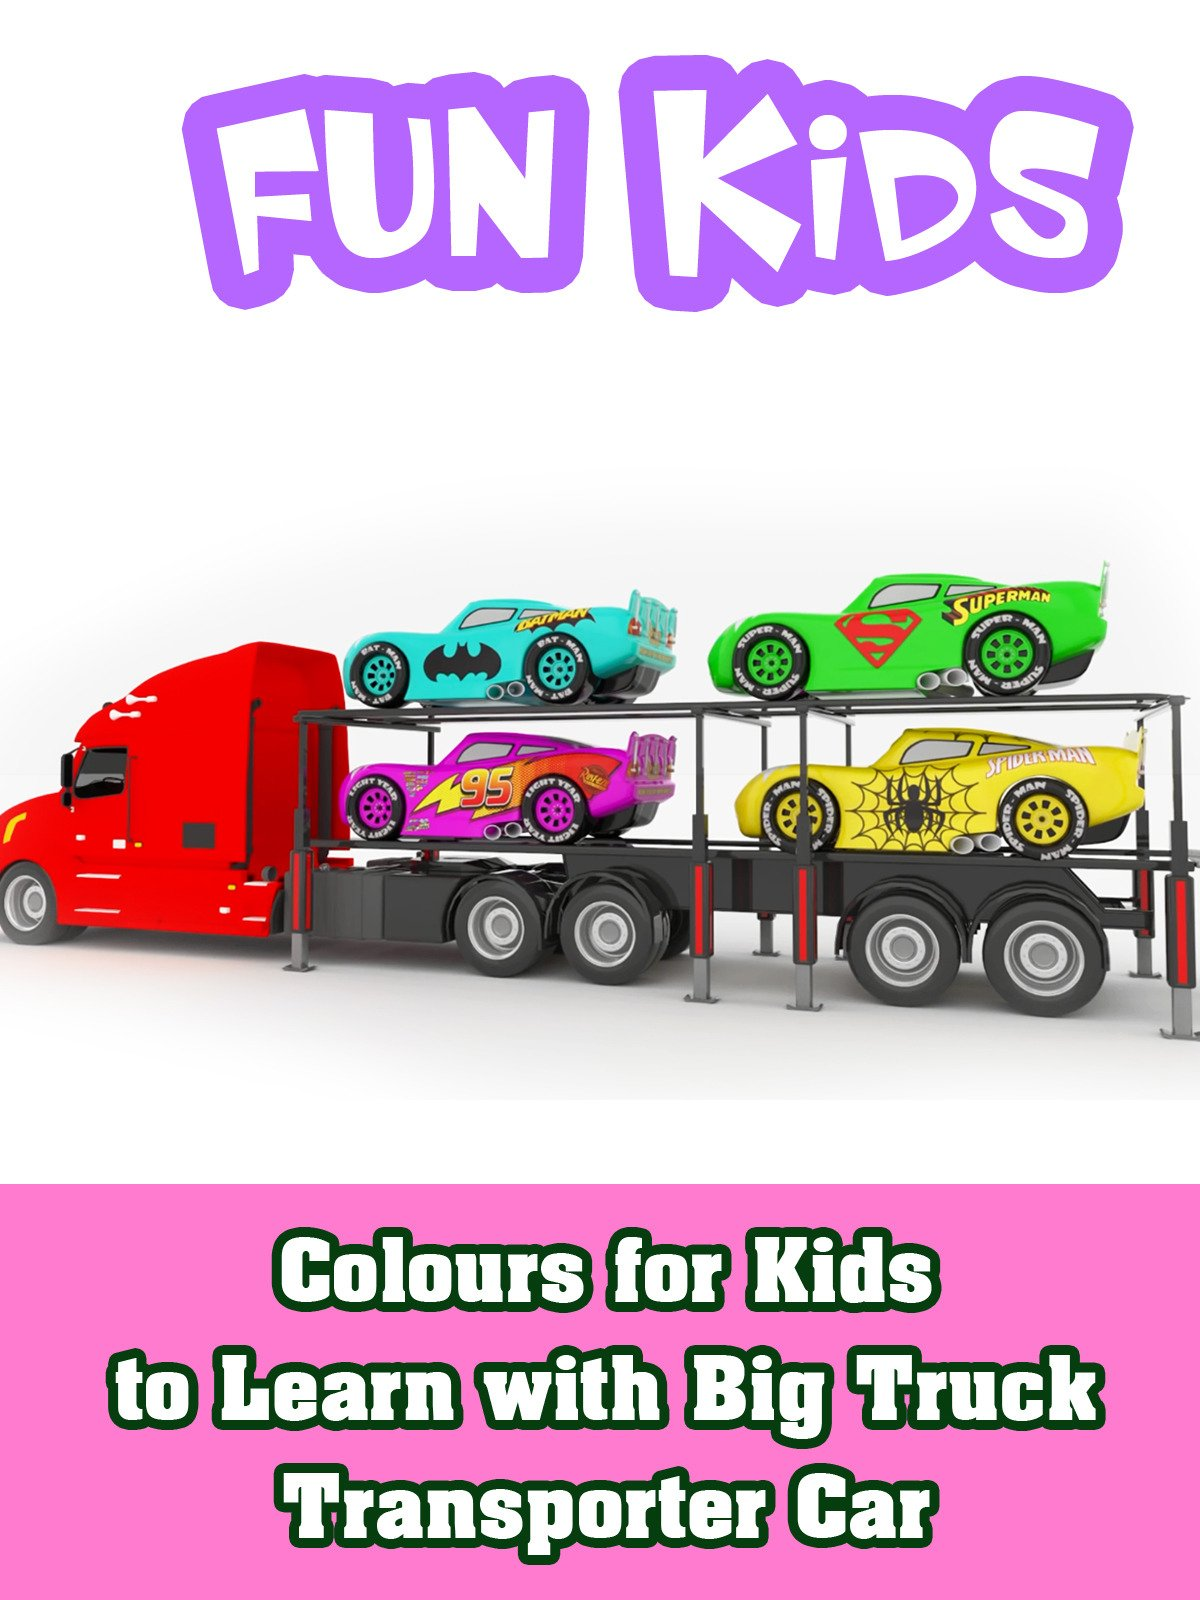 Colours for Kids to Learn with Big Truck Transporter Car